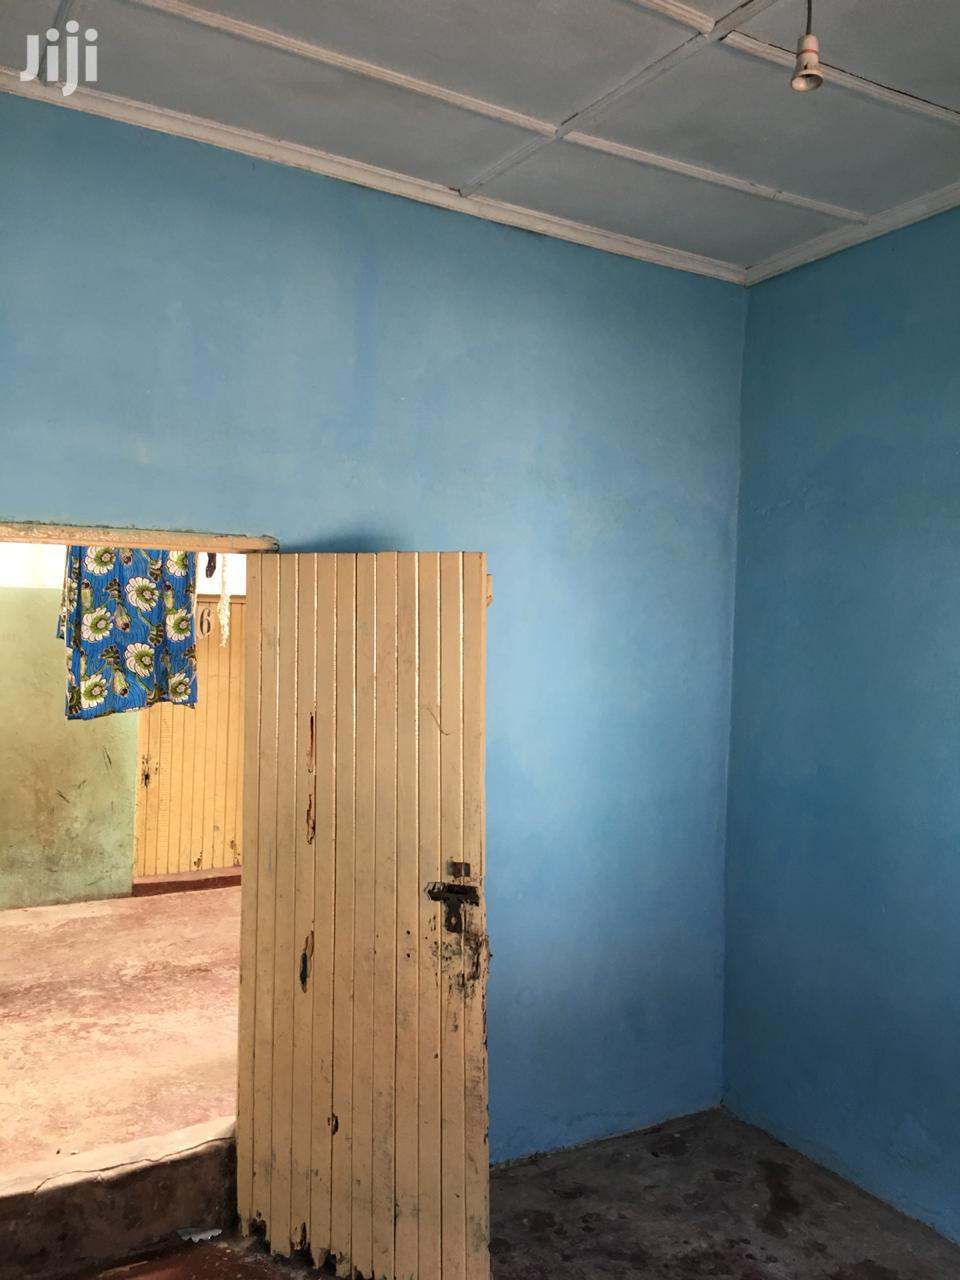 Archive: Single Room To Let At Mombasa-bakarani (Ref Hse 193)